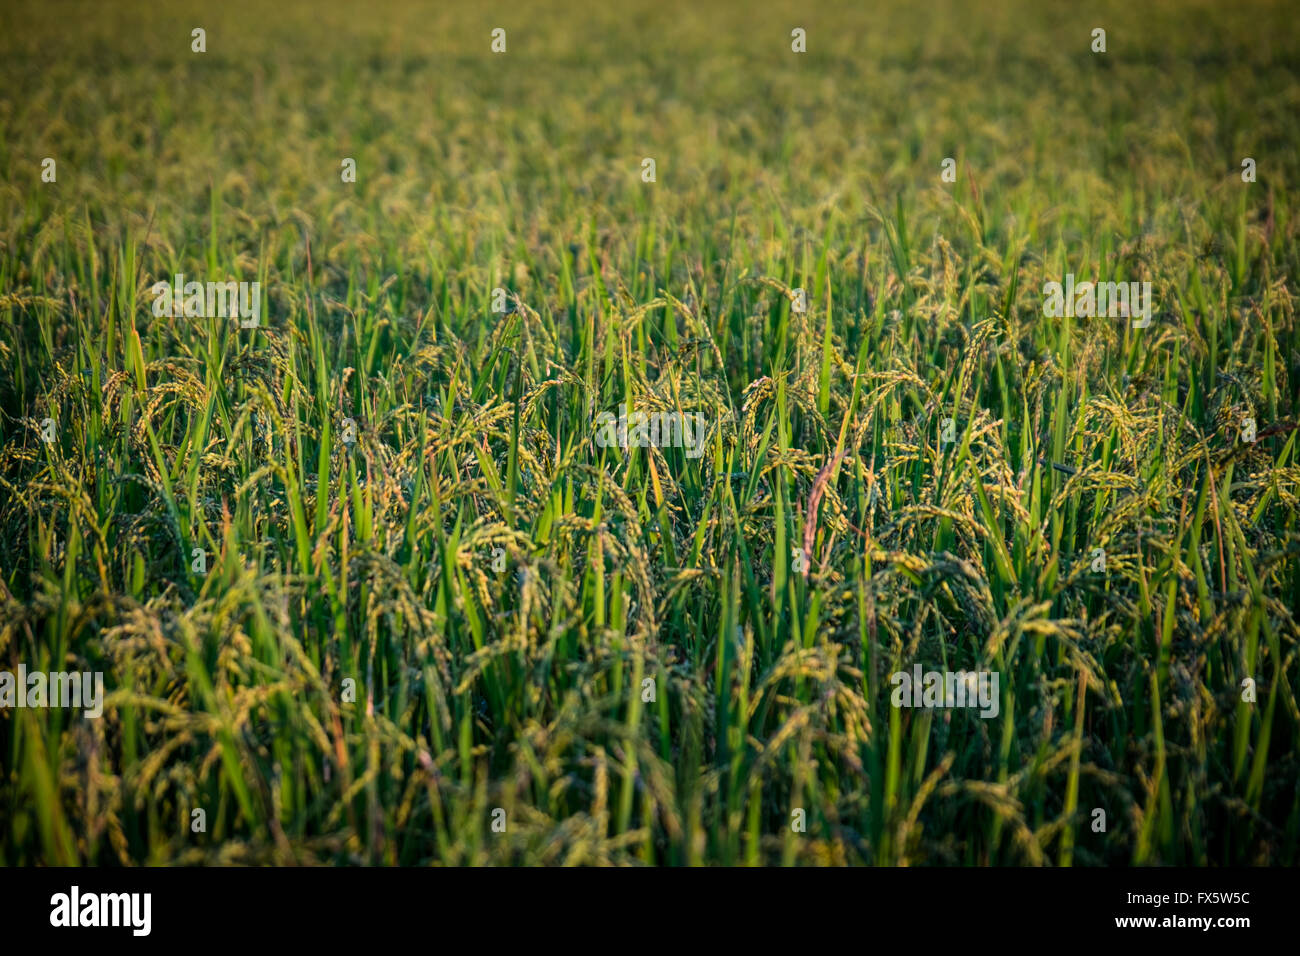 Rice growing in a paddy in Luang Namtha, Northern Laos PDR. - Stock Image